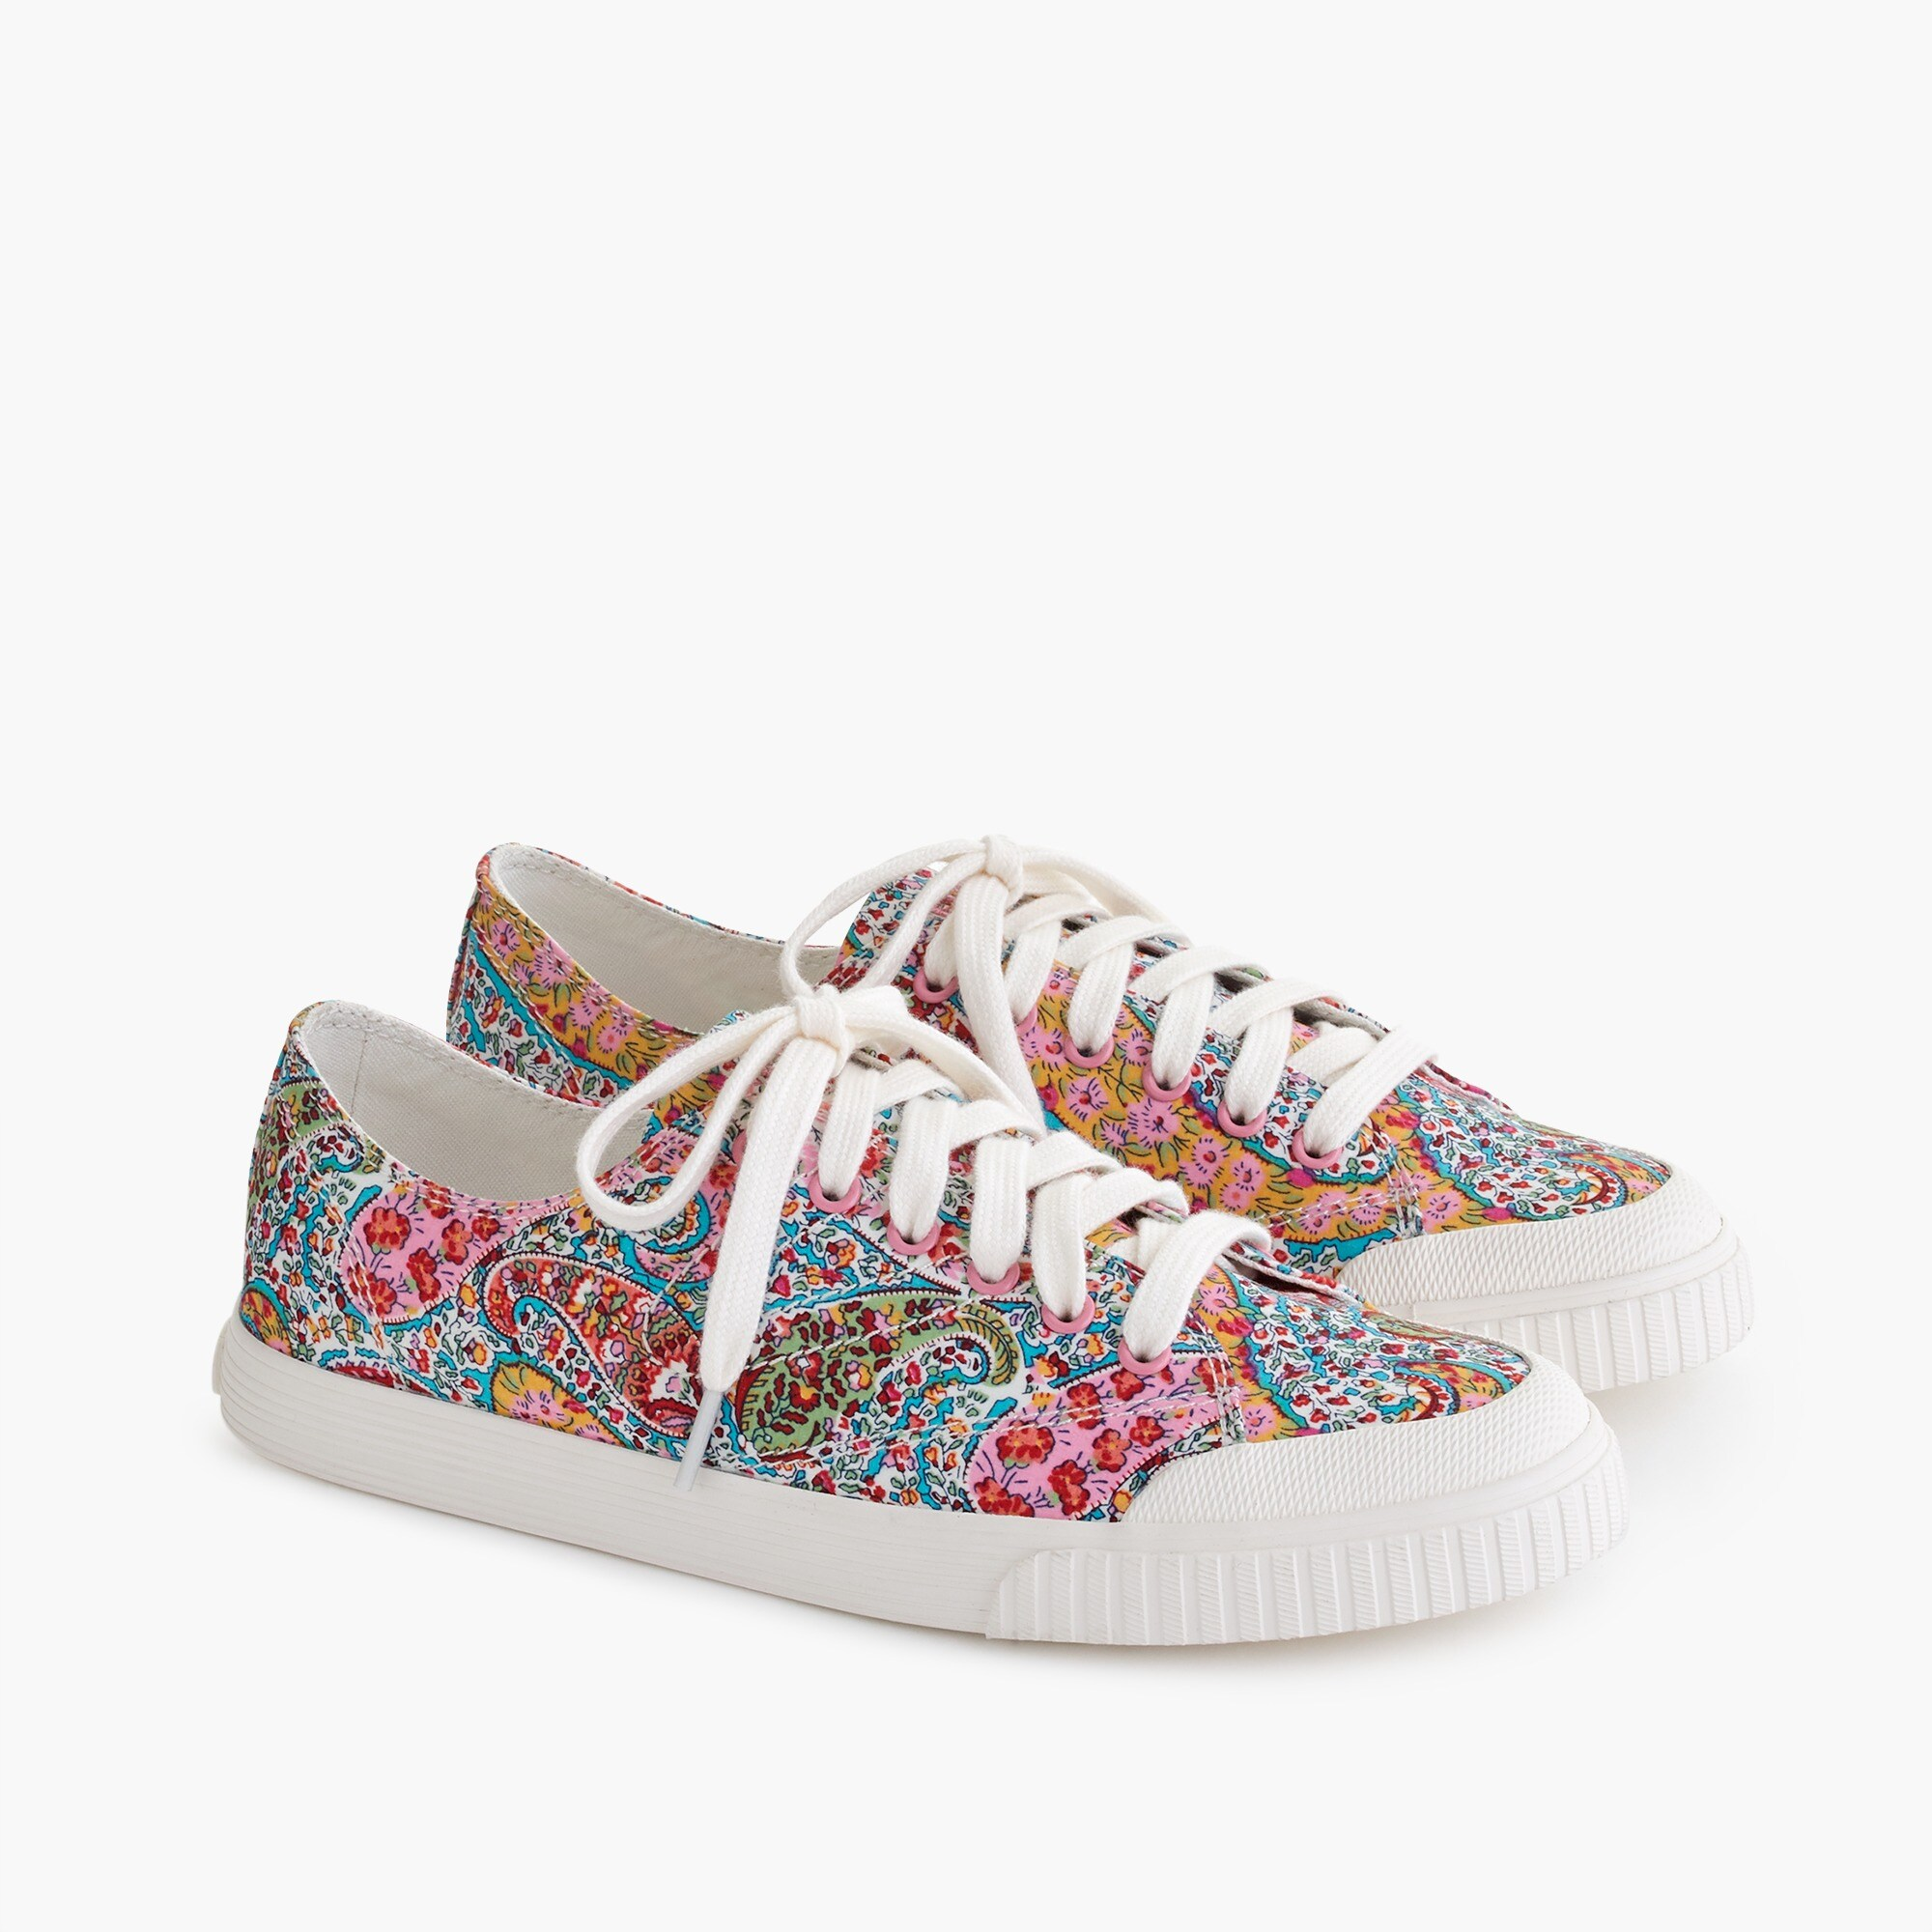 womens Women's Tretorn® Marley canvas sneakers in Liberty floral